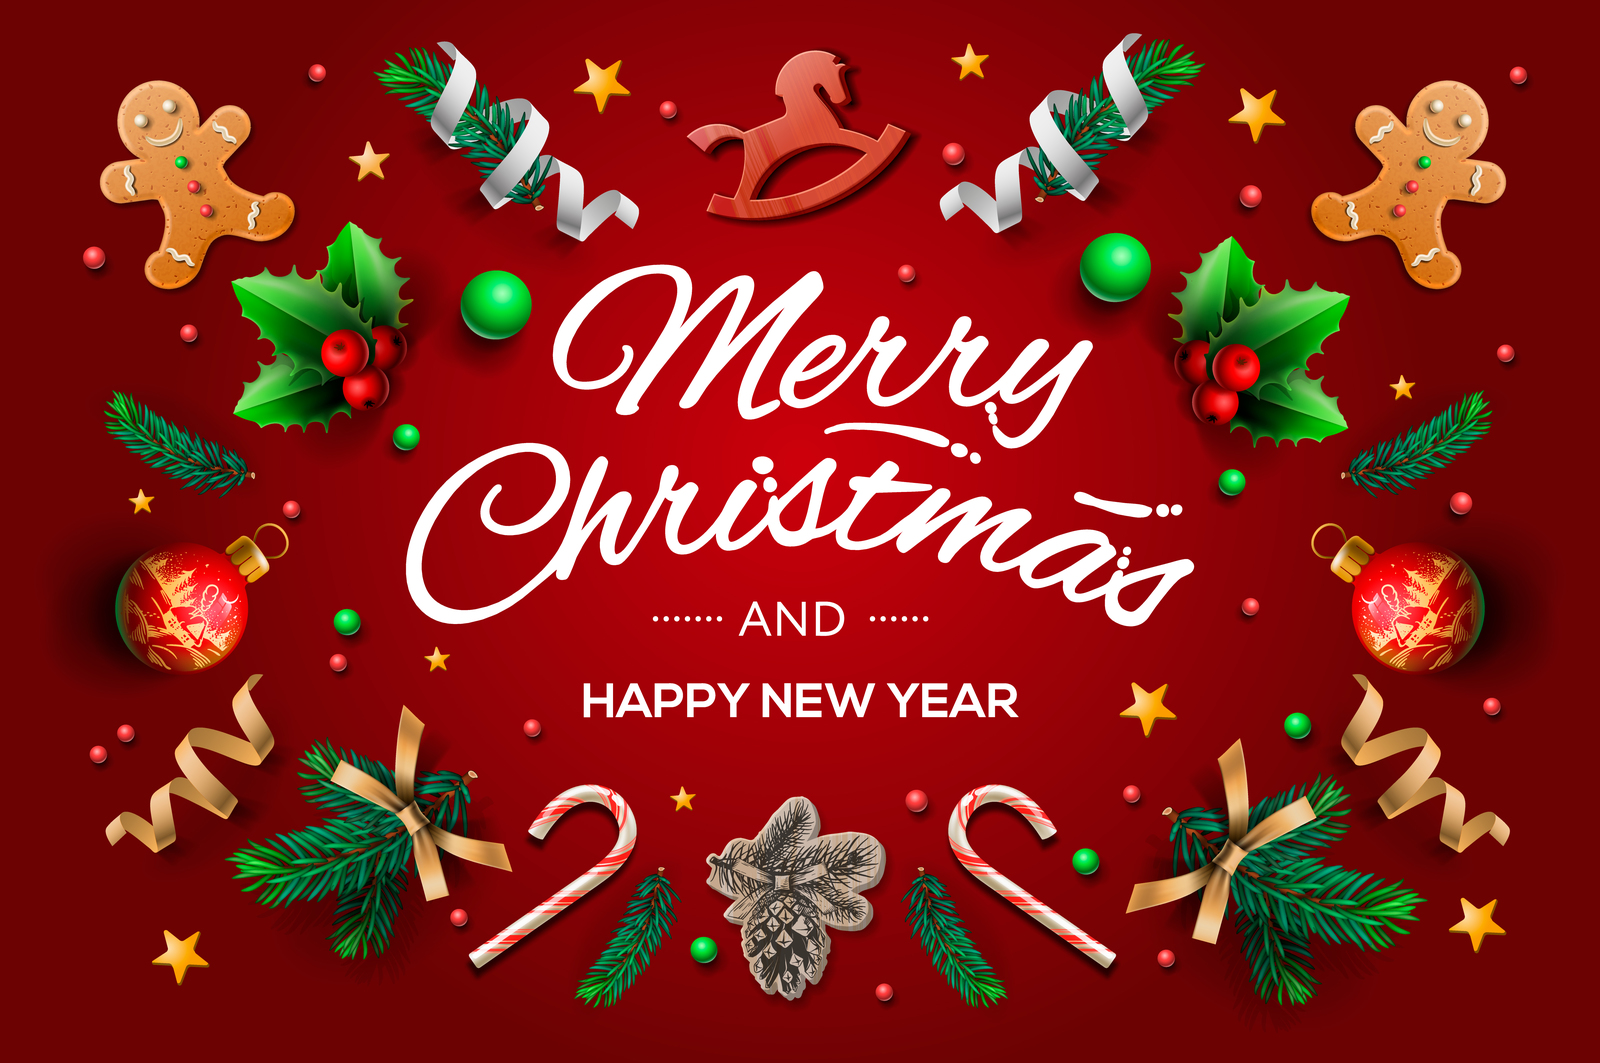 christmas greeting card with calligraphic season wishes in